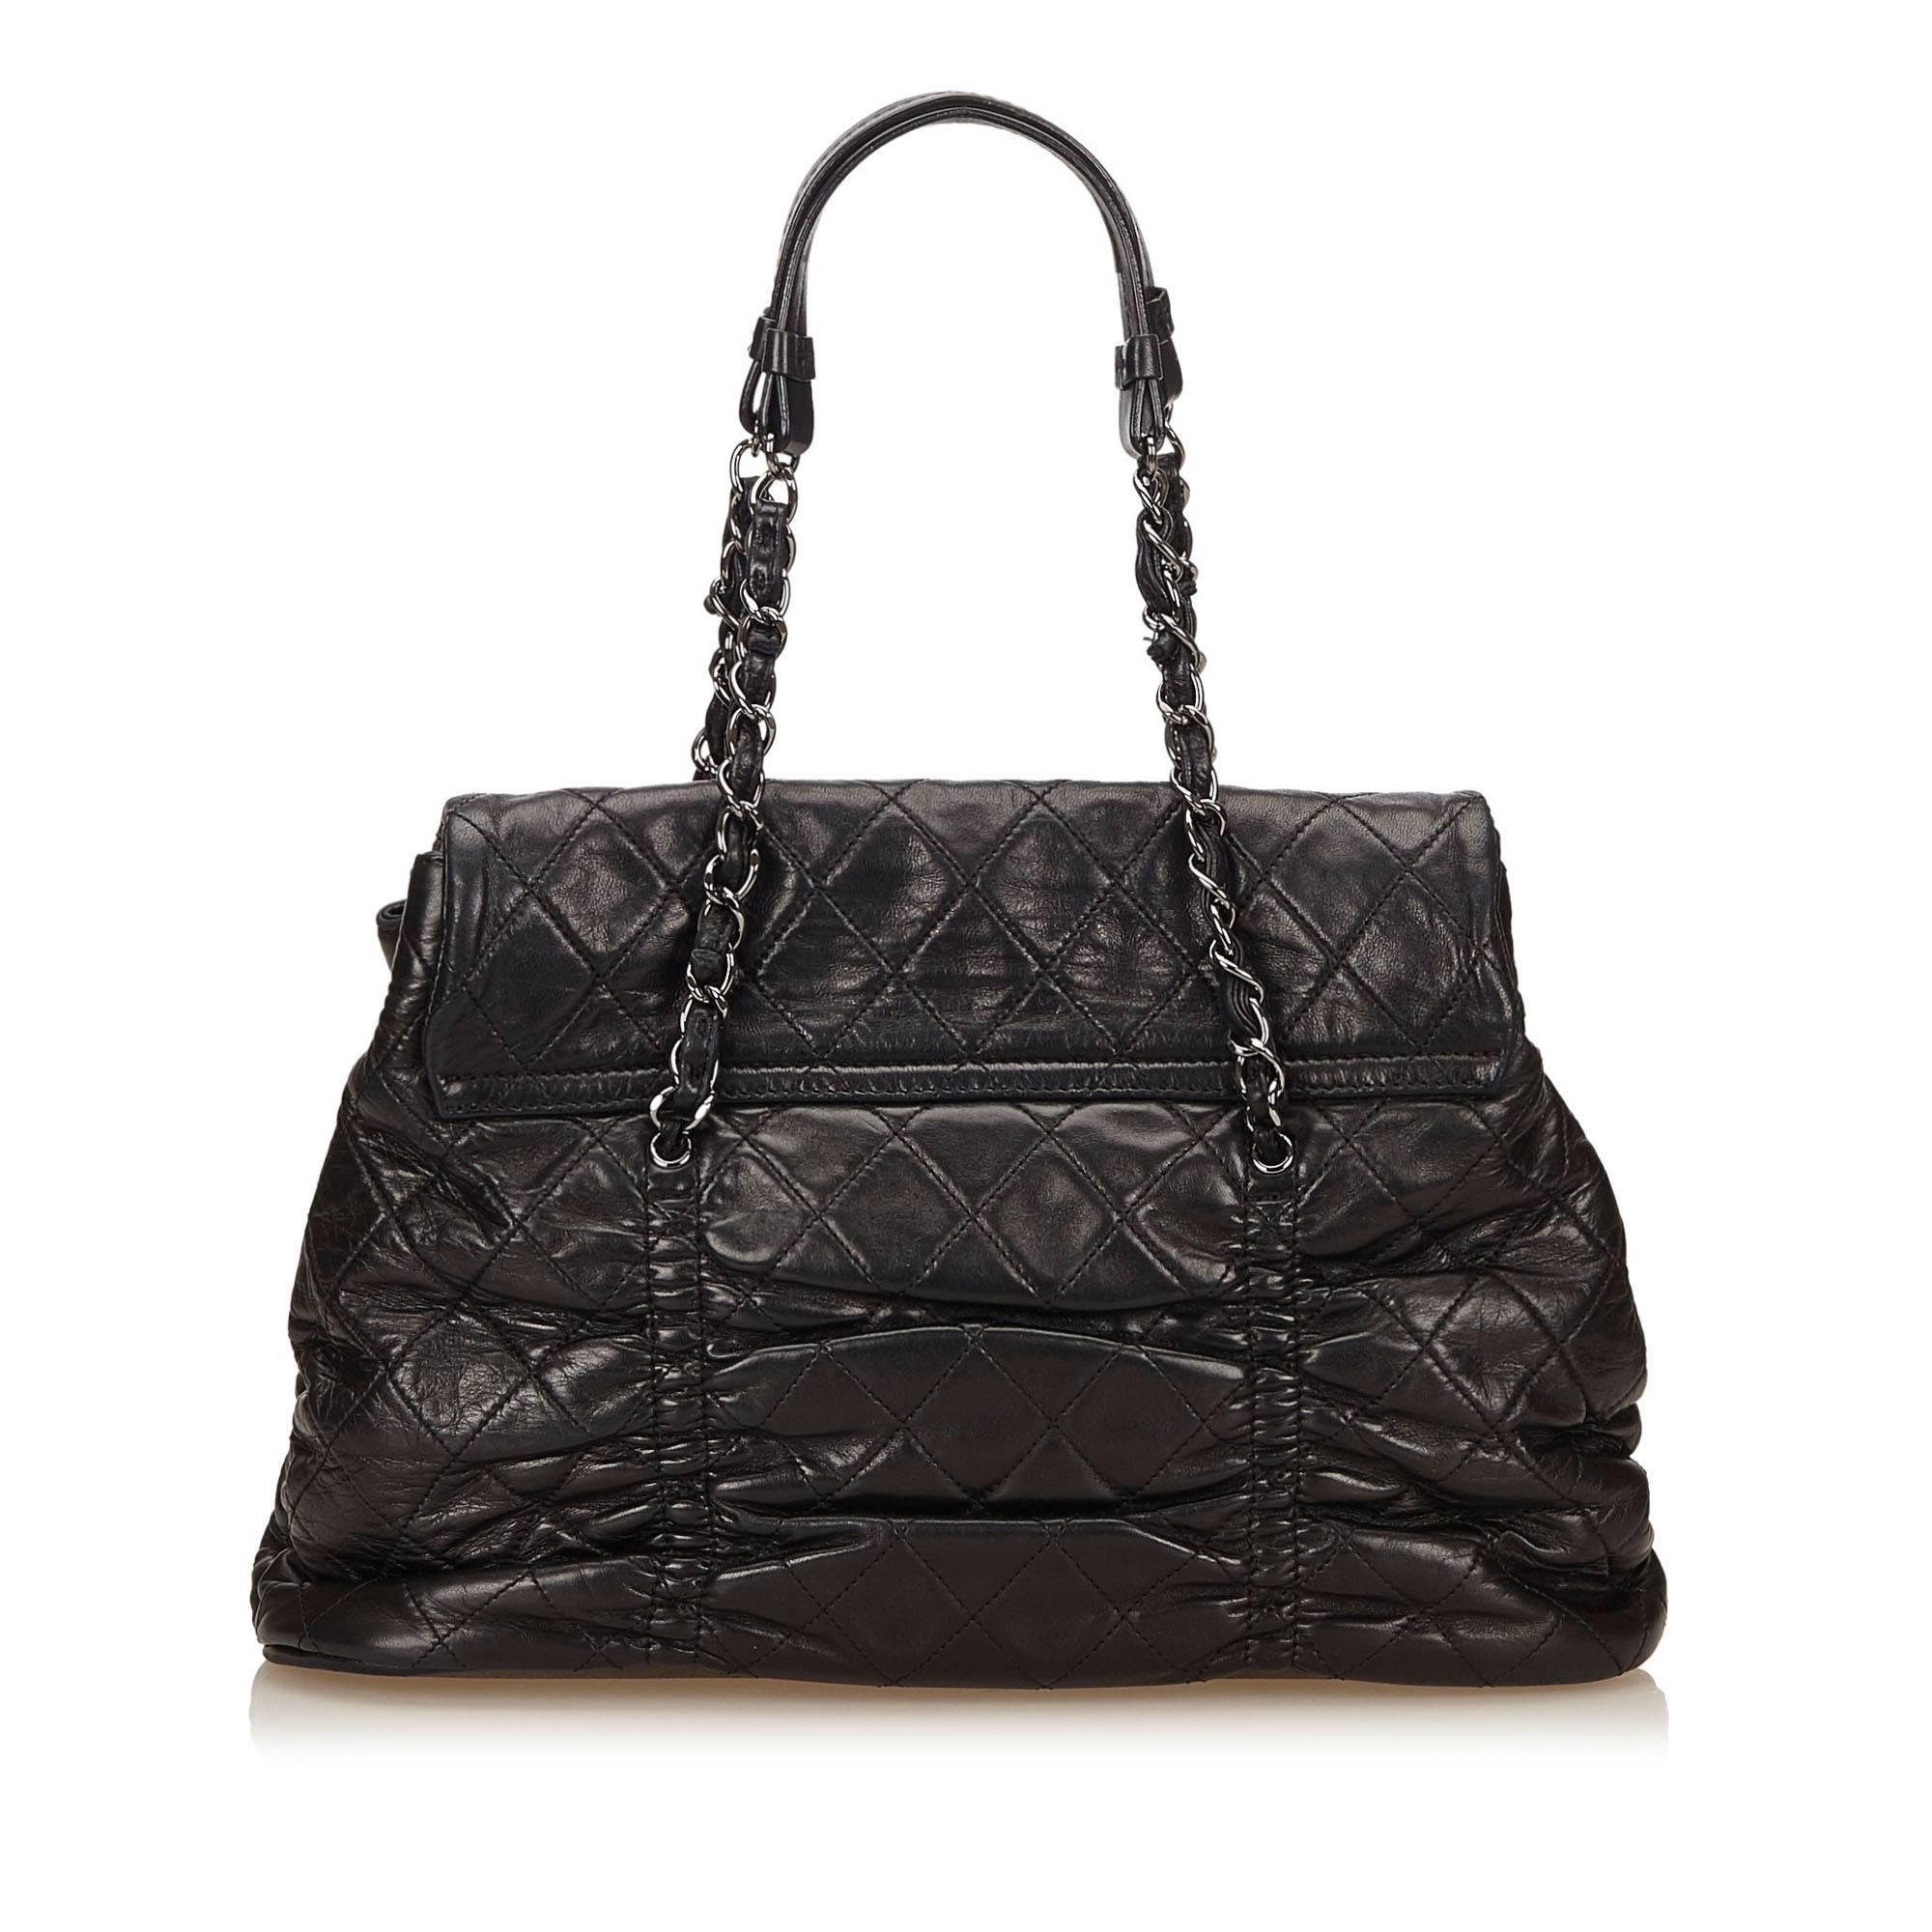 920bd639f32e Chanel Black Quilted Lambskin Leather Matelasse Tote Bag For Sale at 1stdibs